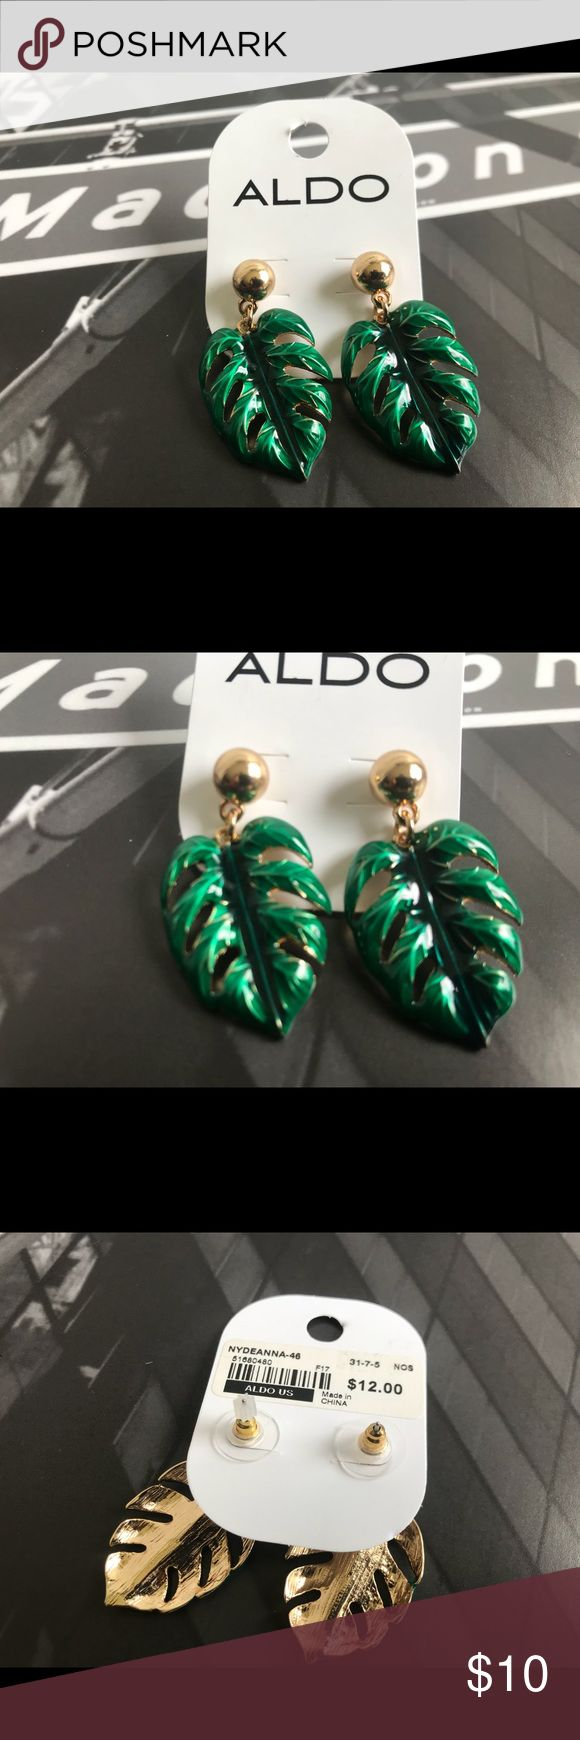 🙌🏾Brand New Aldo Leaf Earrings #0258AO Emerald green gold trimmed shaped leaf earrings. Also has a matching necklace. Nydeanna-46. Bundle and Save 10%.  #earrings #women #gold #green #leafshaped #accessories Aldo Jewelry Earrings